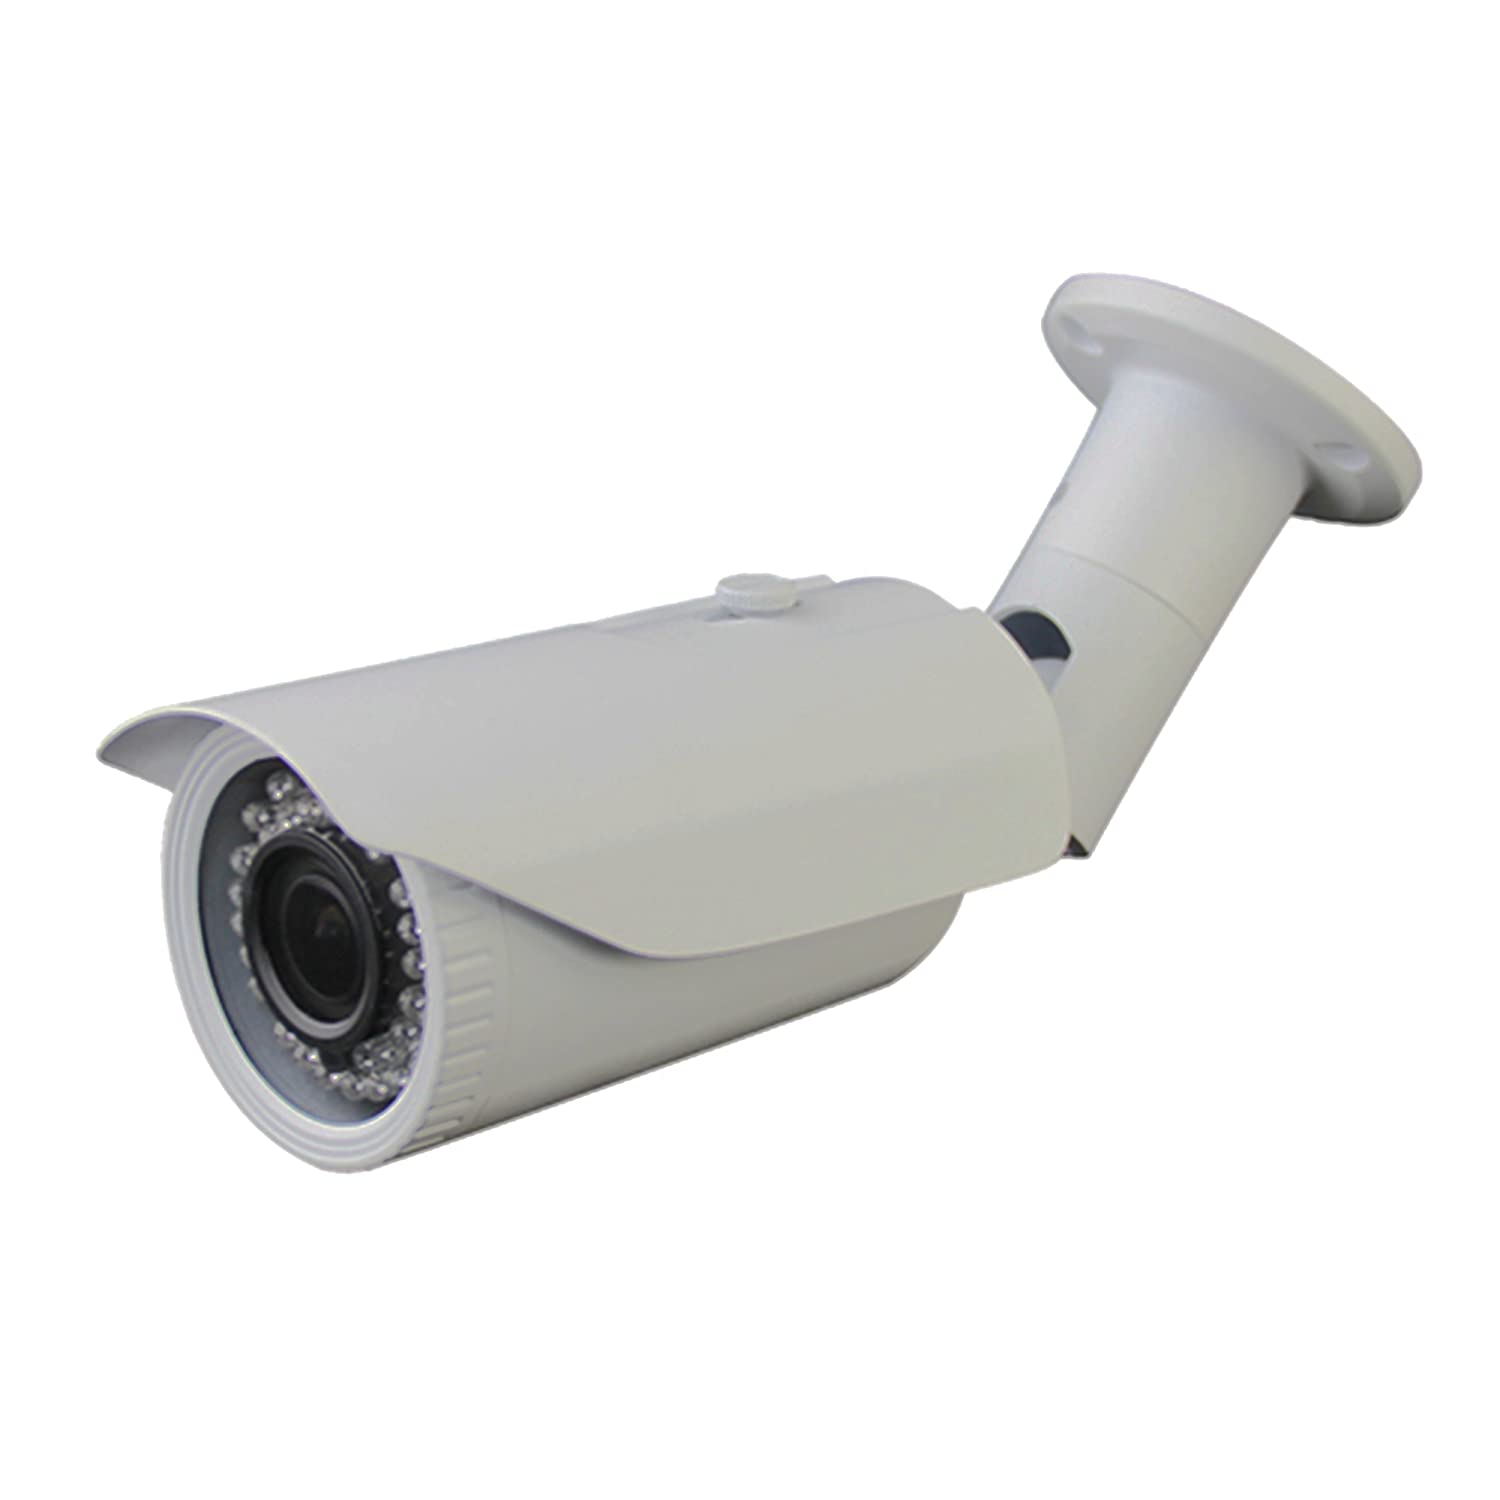 Homevision Technology Security Camera (SEQ10210)